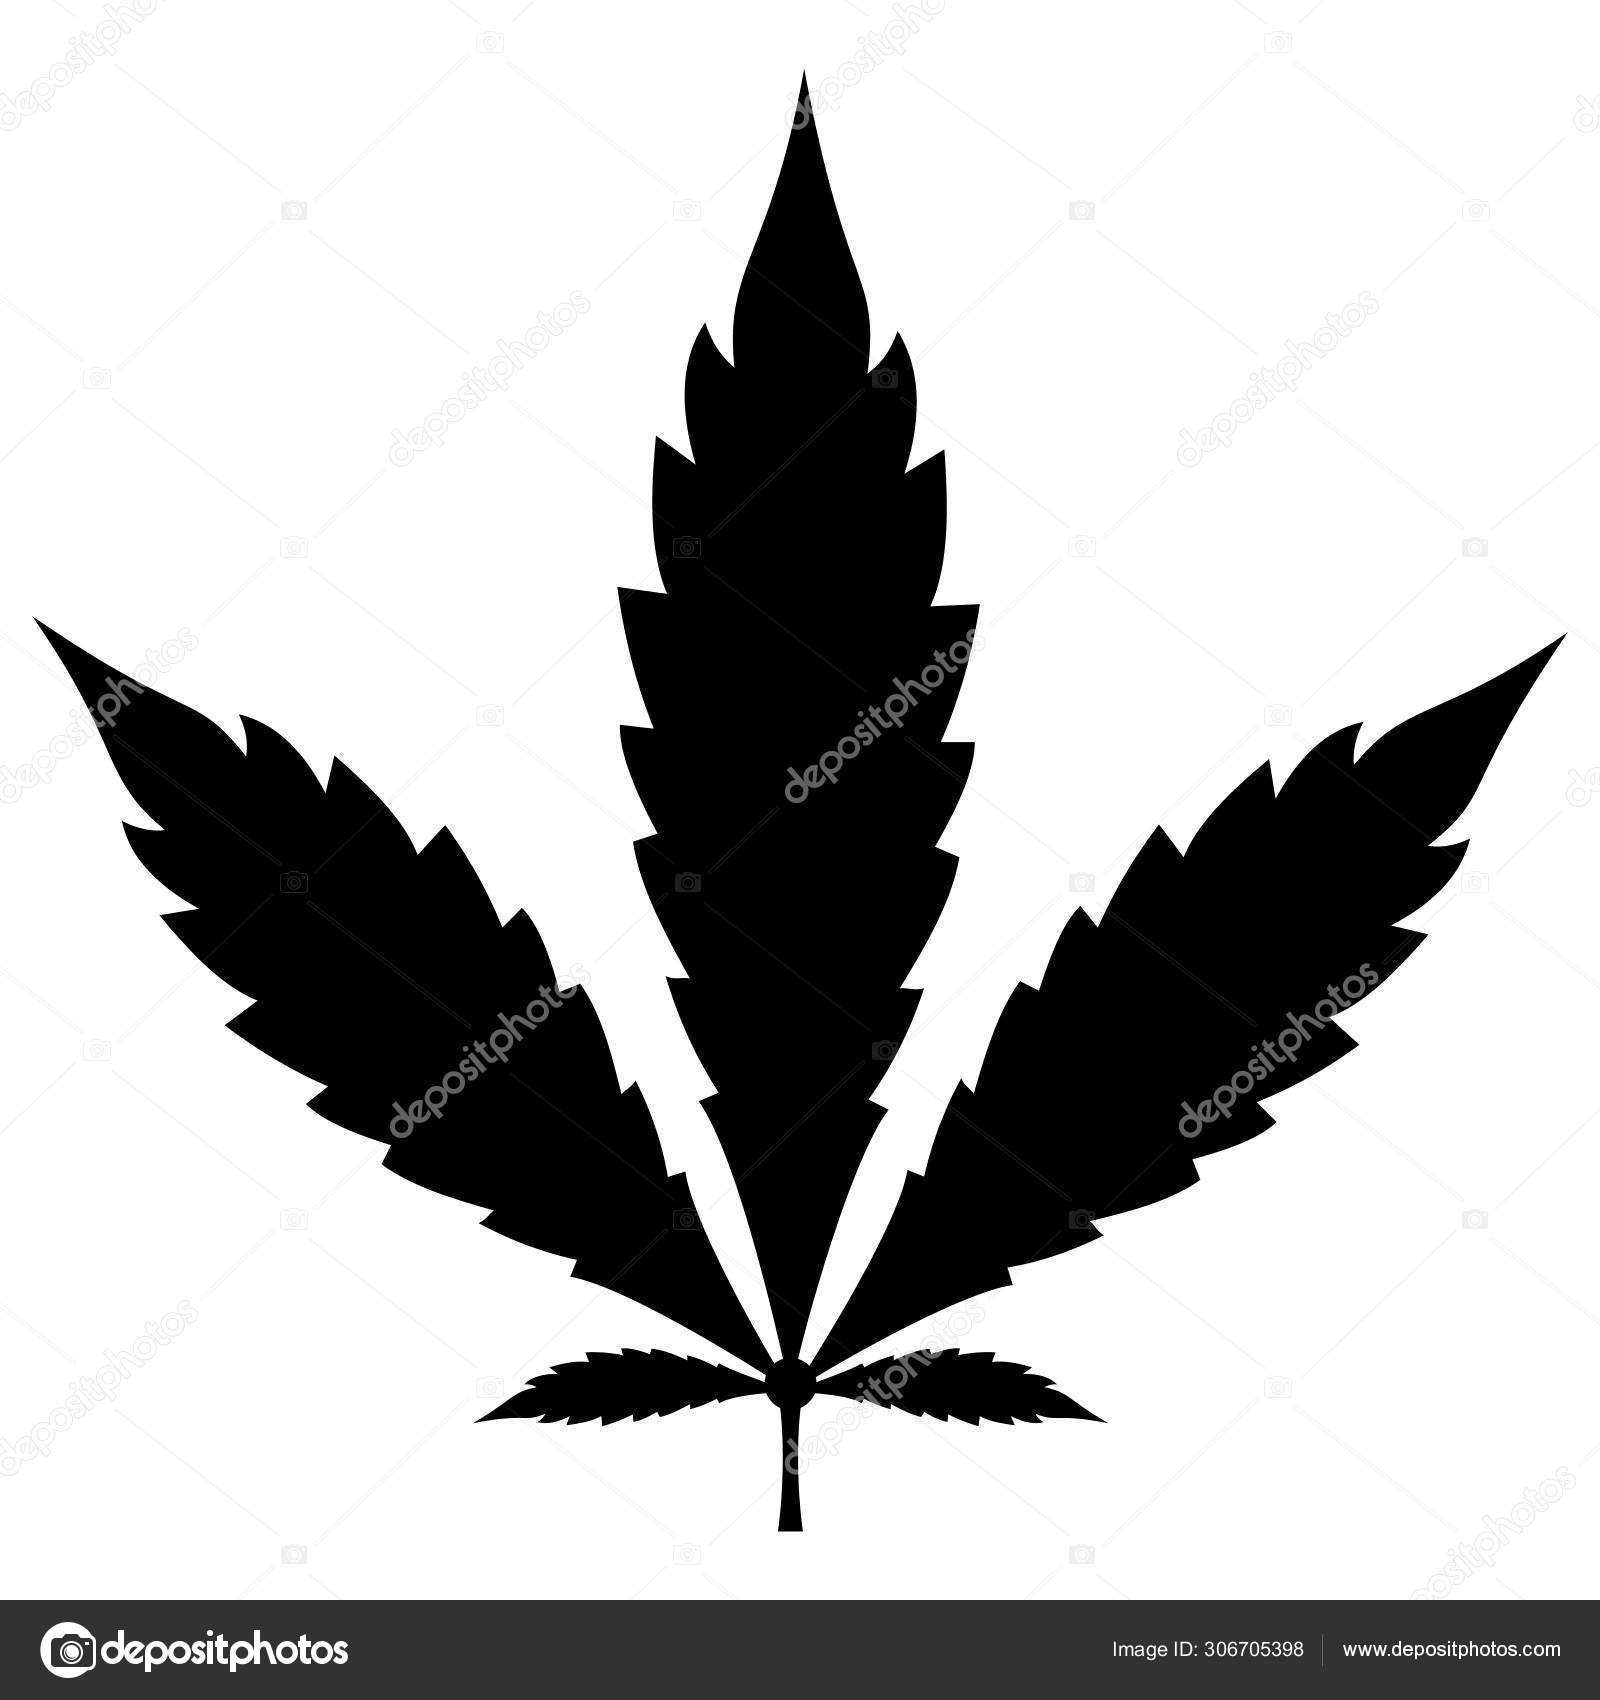 Marijuana Leaves Vector Illustration Stock Vector C Iconscout 306705398